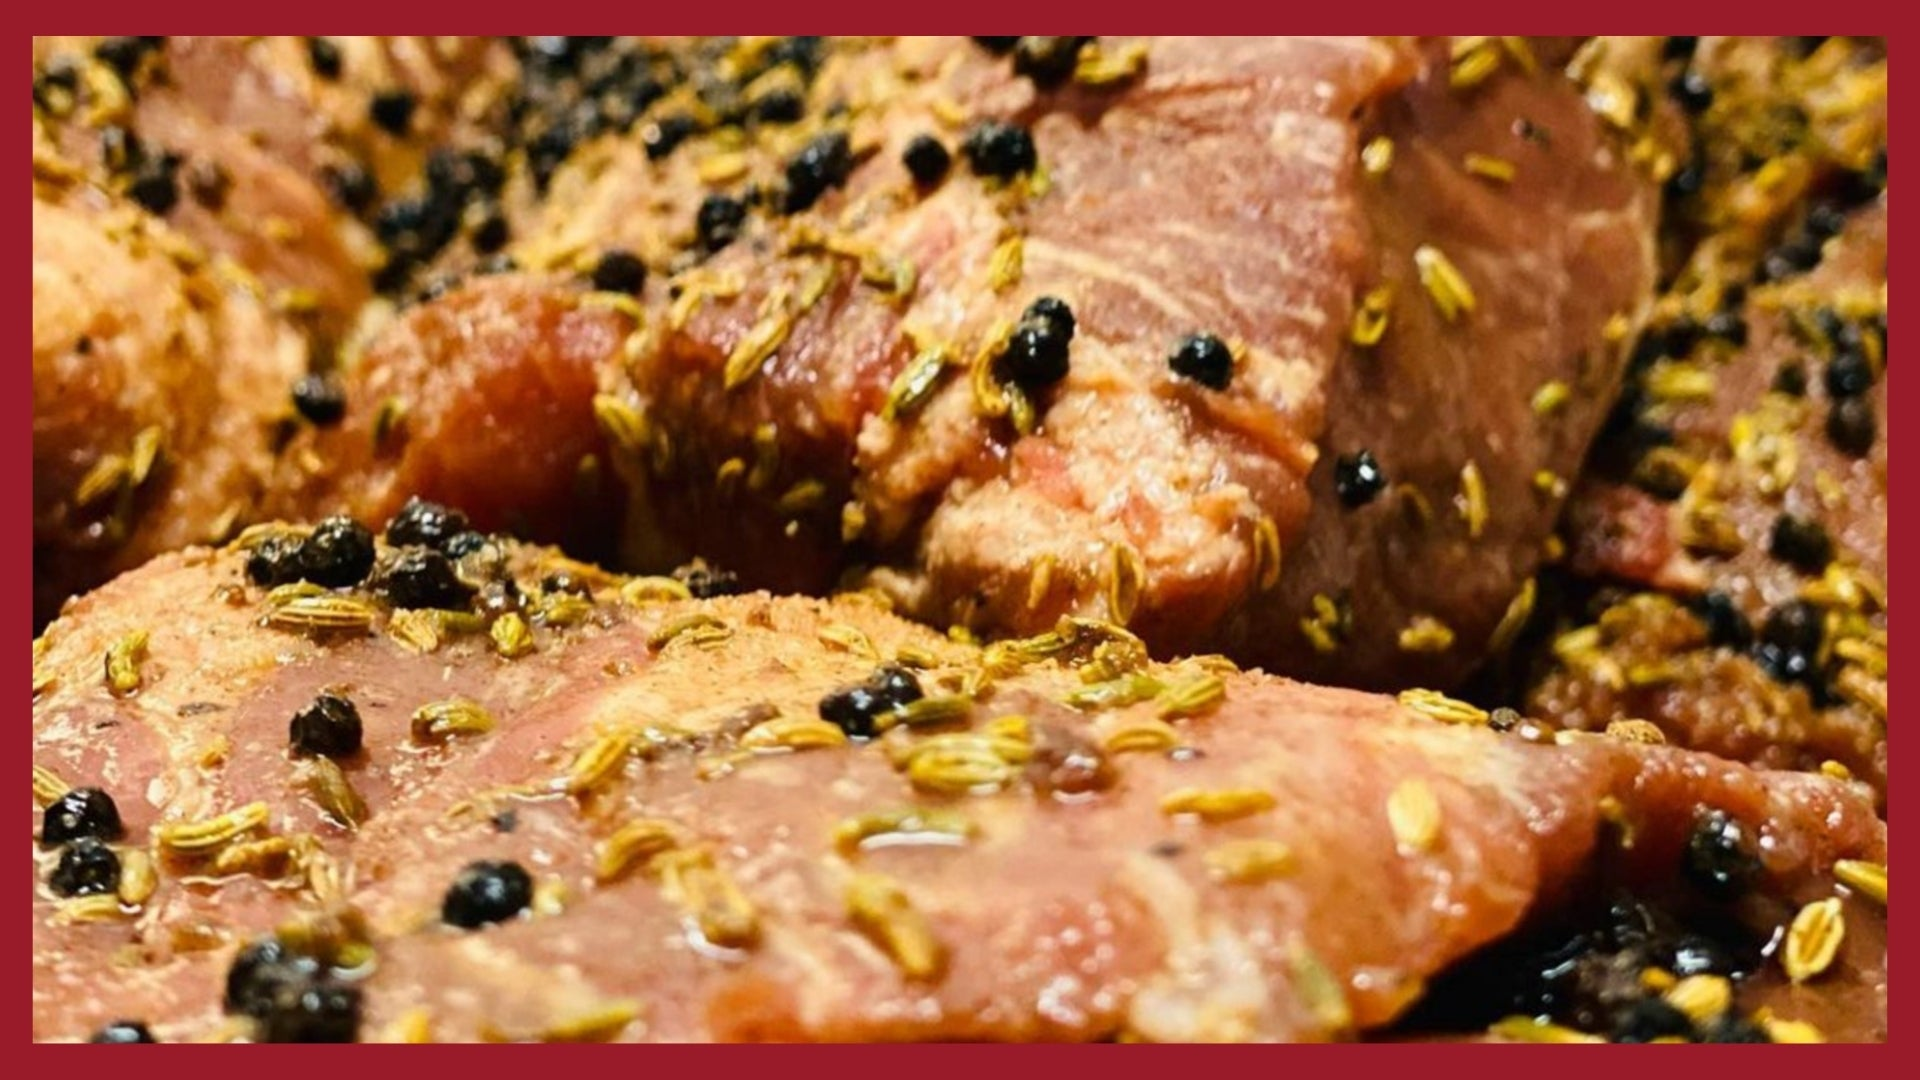 A close up picture of coppa meat curing in a blend of herbs and spices.